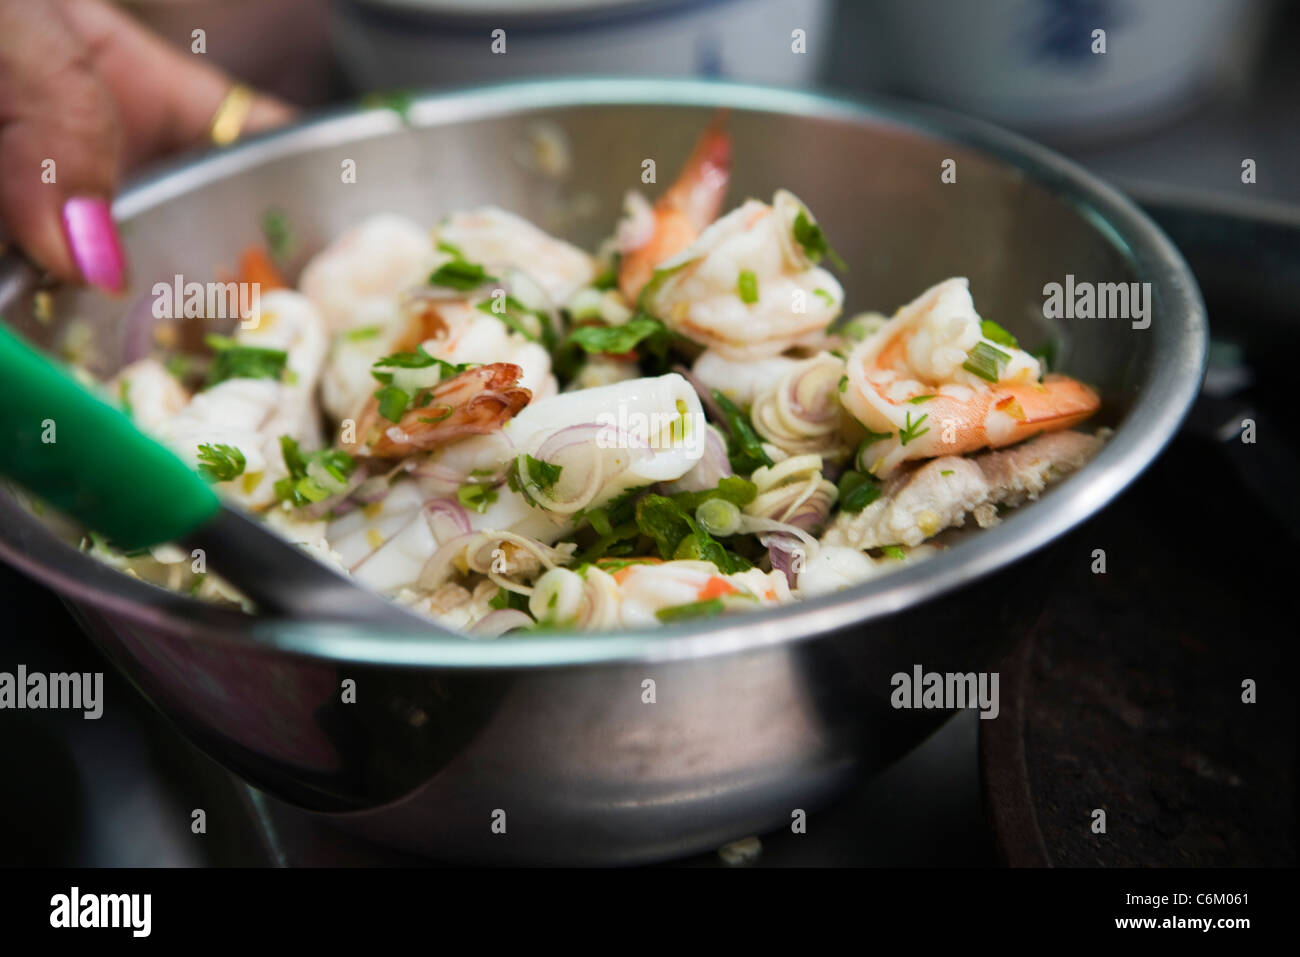 Preparing seafood salad with mint - Stock Image